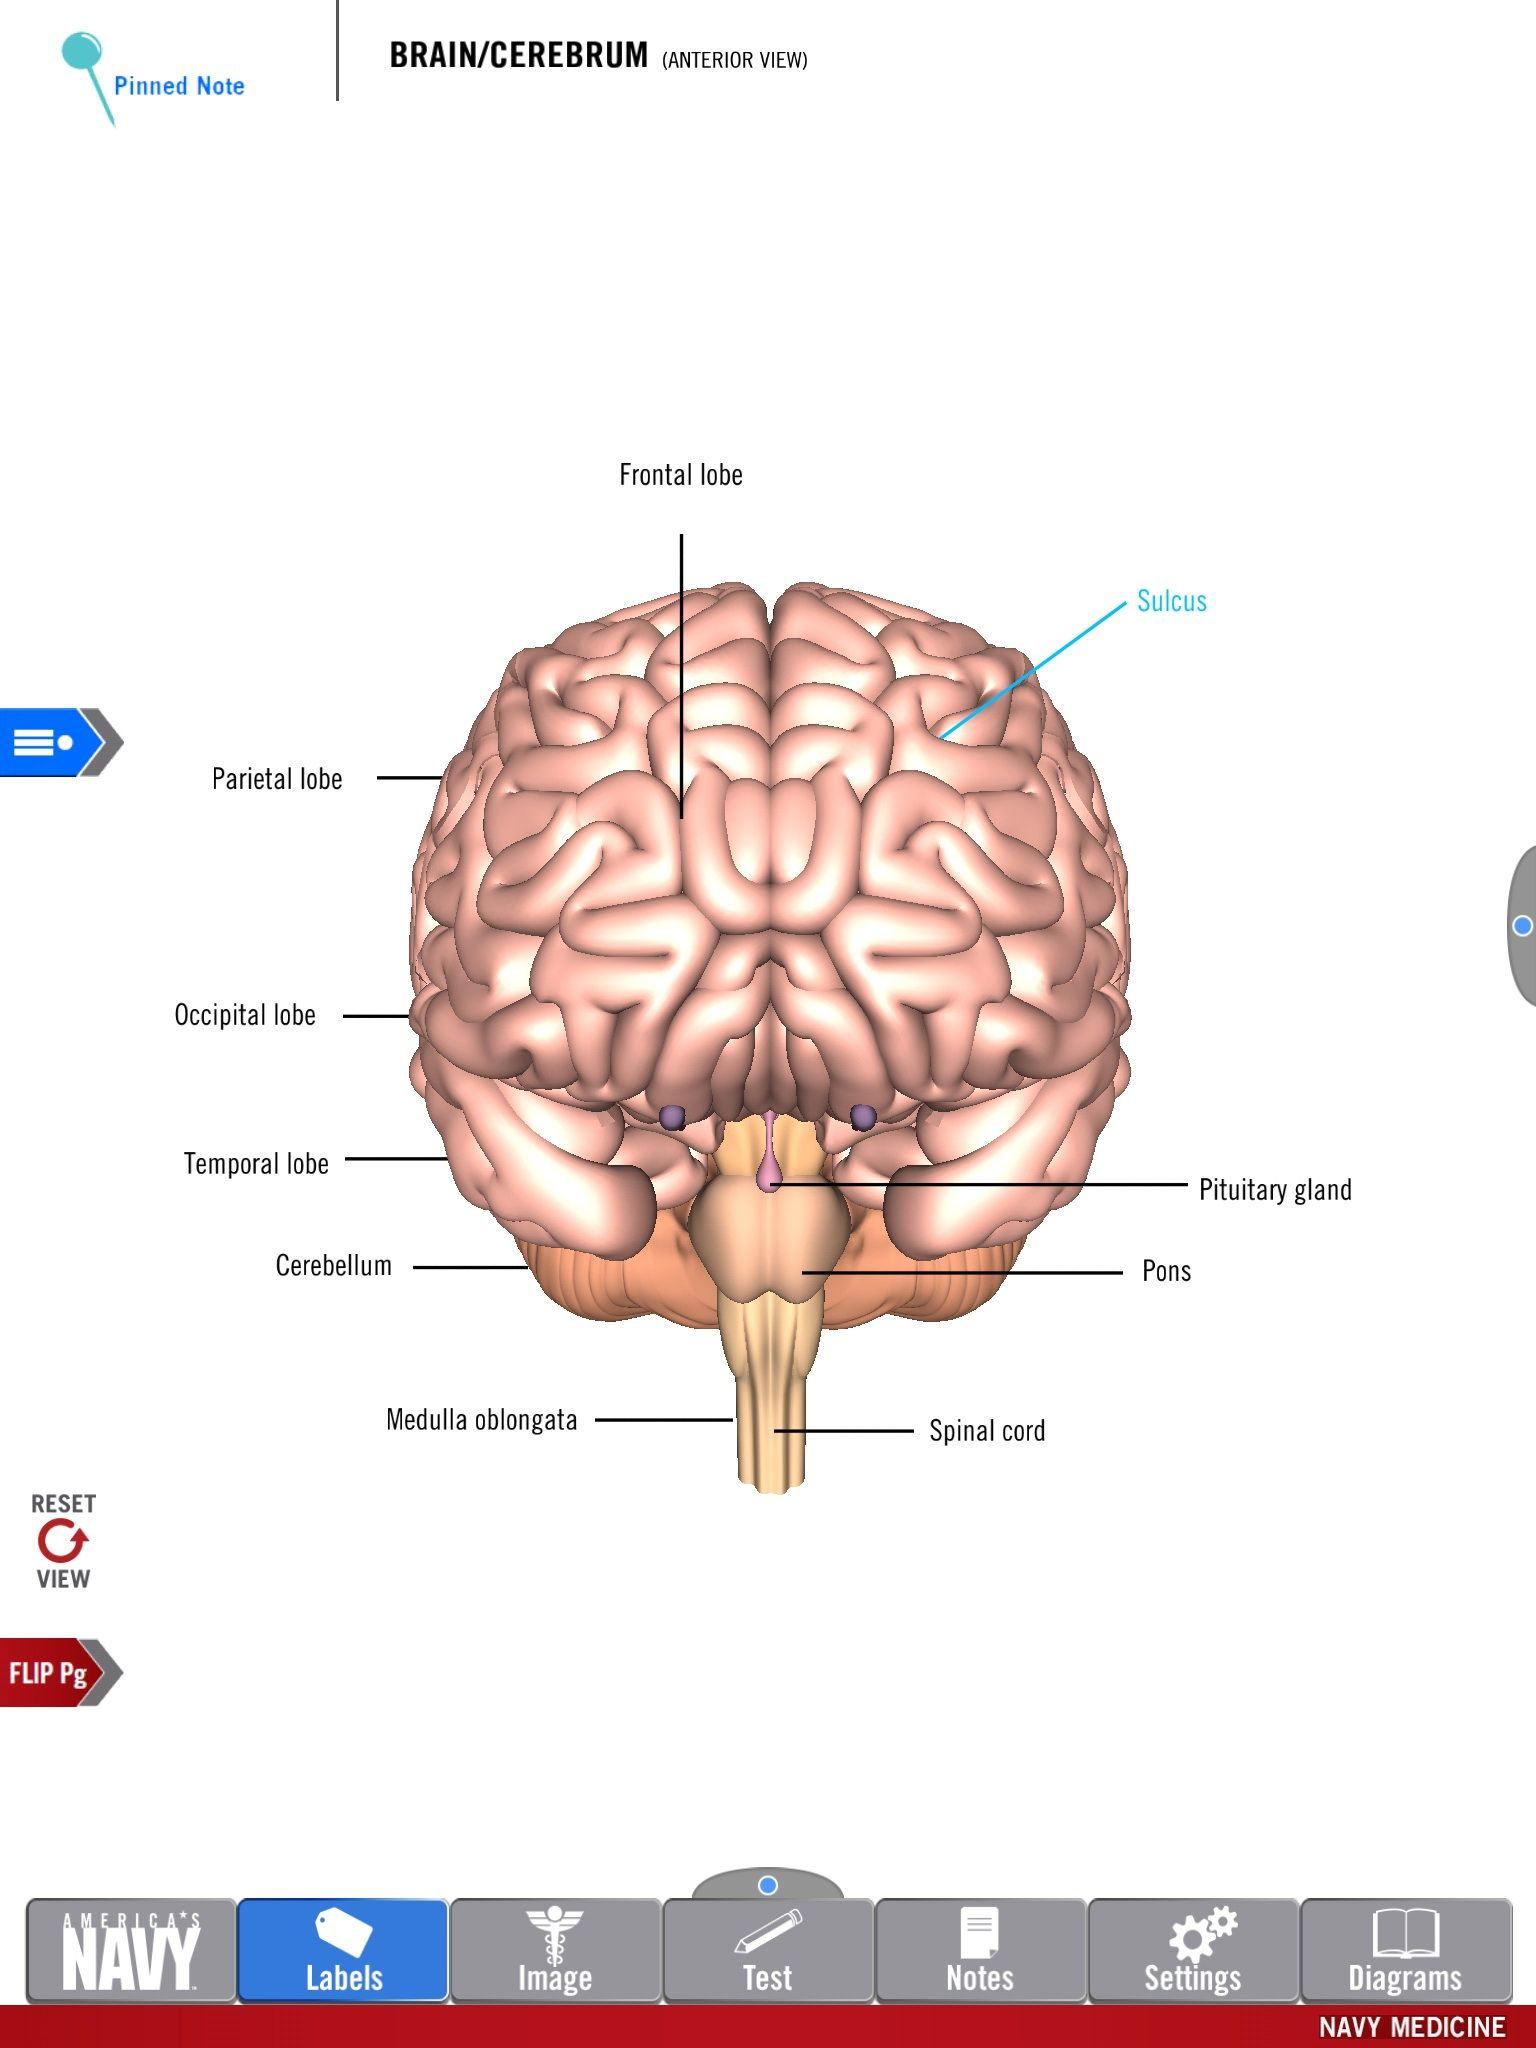 Diagram of the Brain/Cerebrum from the free Anatomy Study Guide app ...